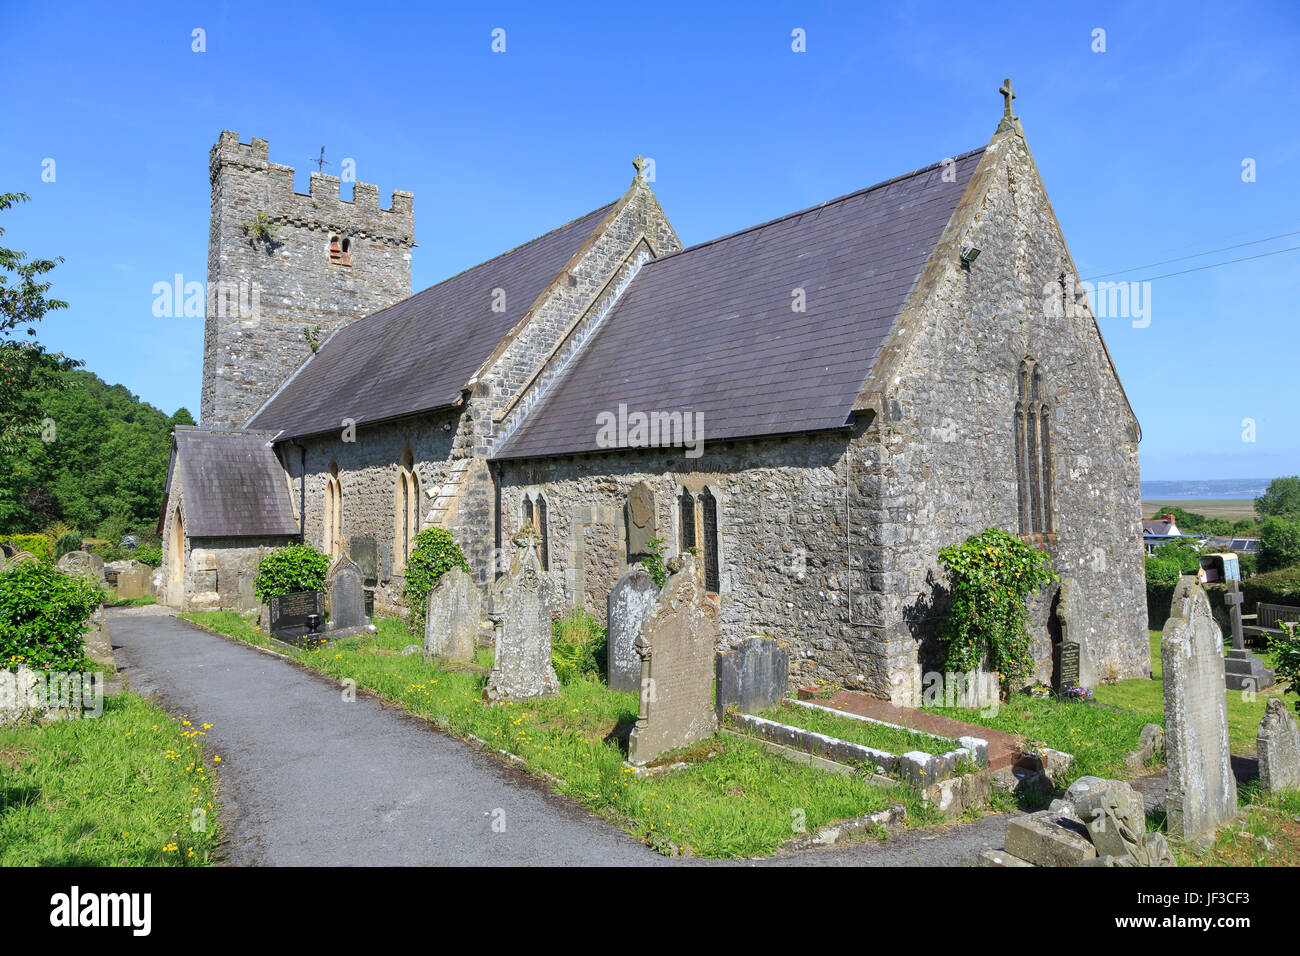 St Rhidian and St Illtyd's Church, Llanrhidian, Gower Peninsula, Glamorgan, South Wales, UK - Stock Image